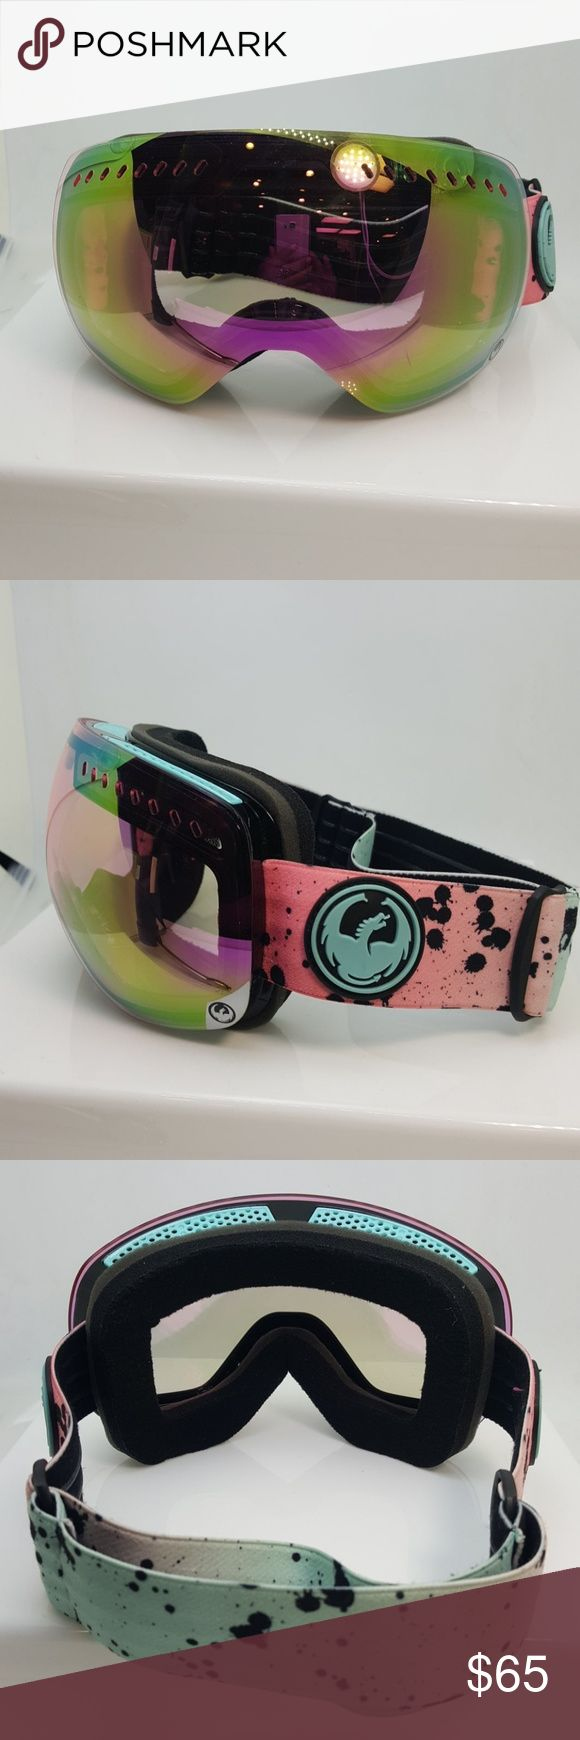 Dragon alliance womans ski goggles Dragon alliance womans ski goggles comes with a case and carrying bag, and extra lens Dragon alliance  Accessories Sunglasses